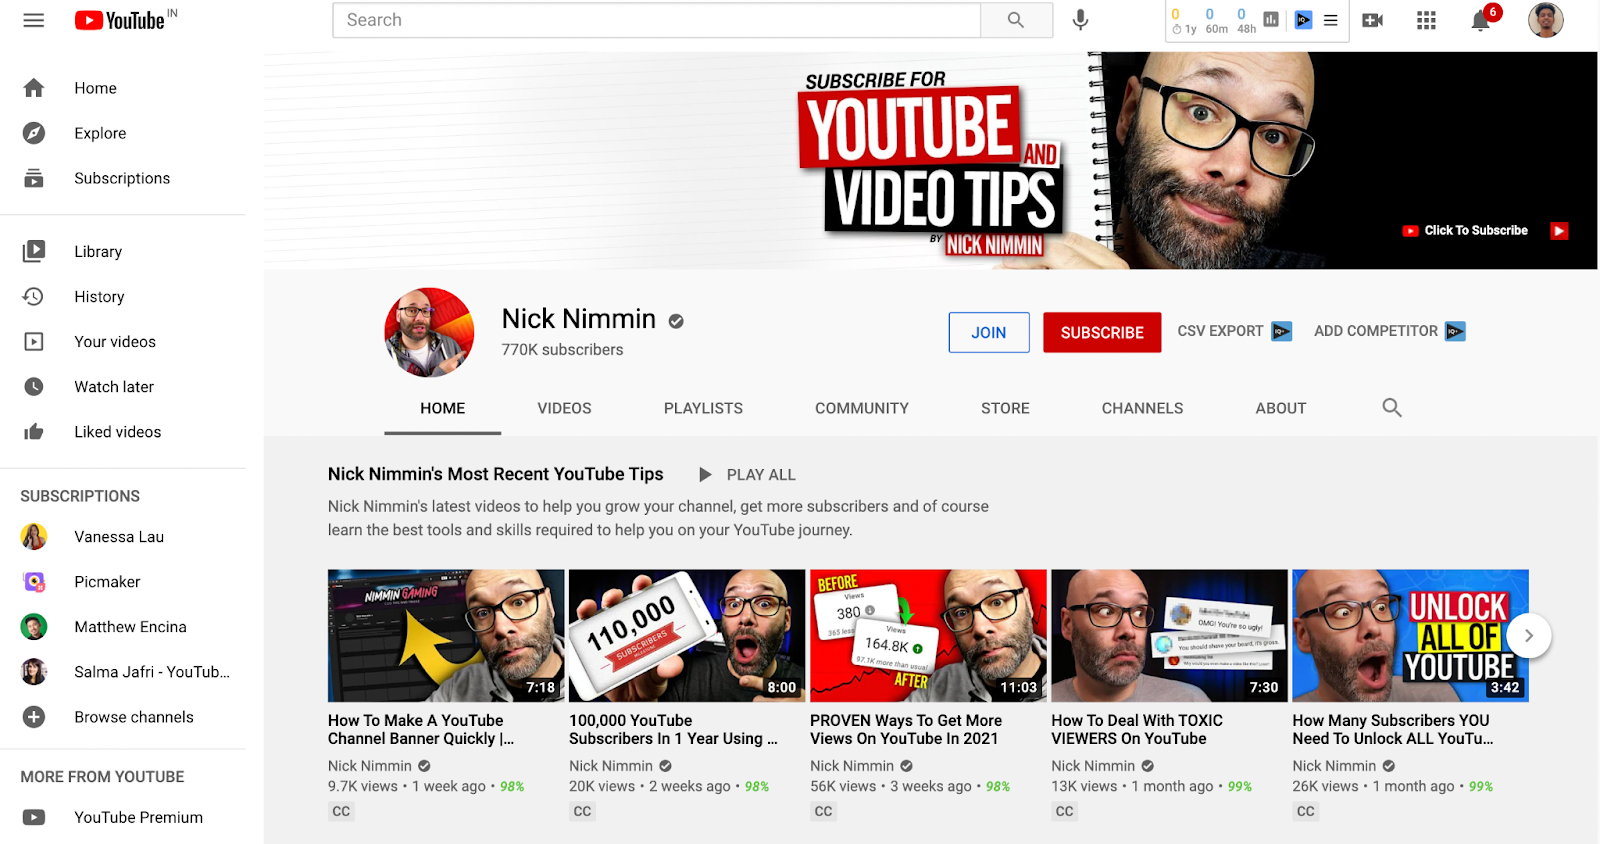 Picmaker-YouTube-Channel-Example-Nick-Nimmin